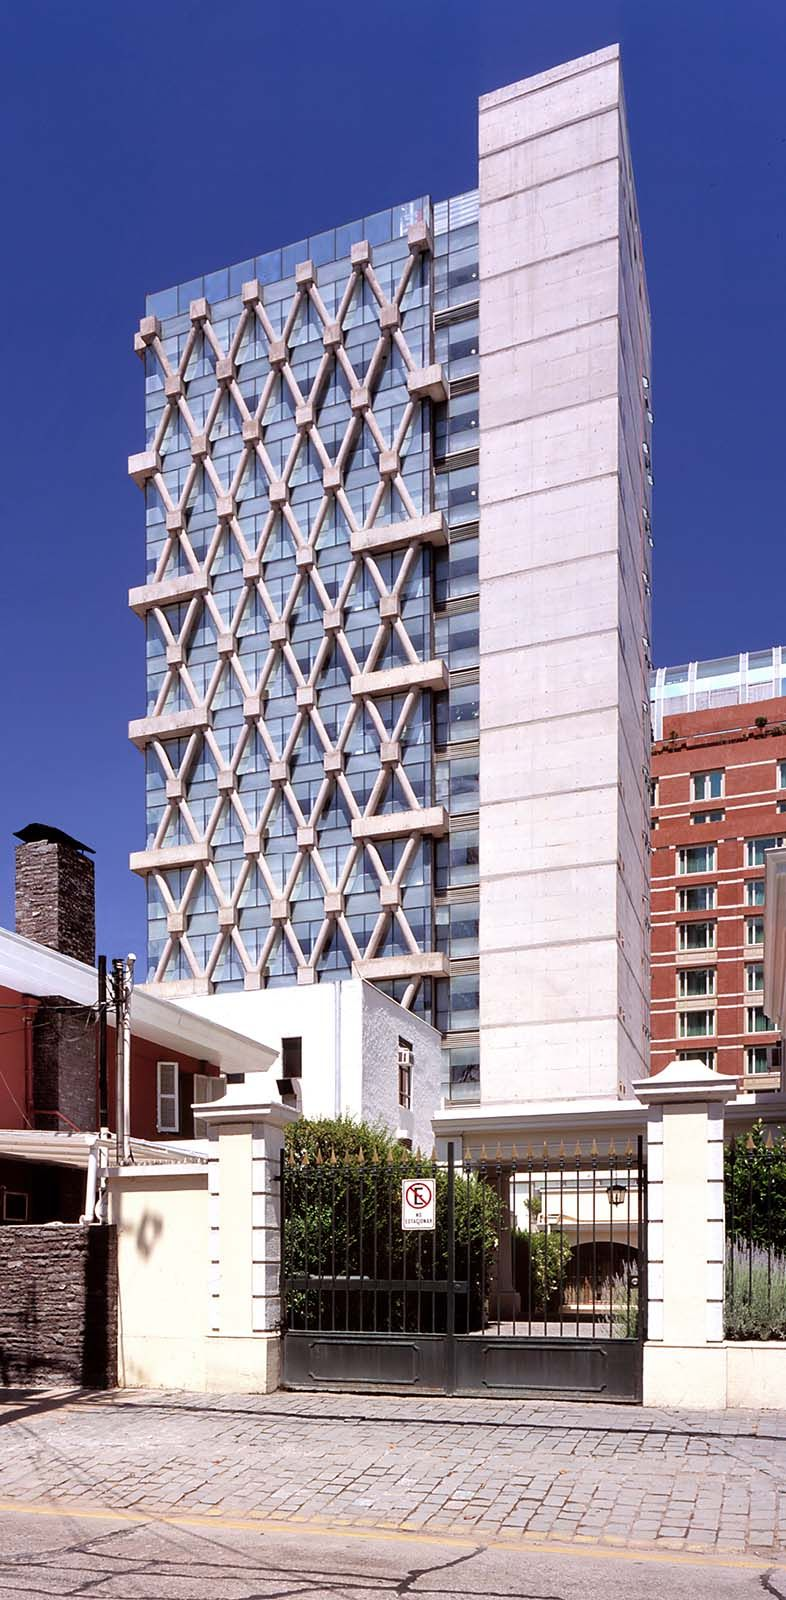 Las Condes Town Council Building|undurragadeves